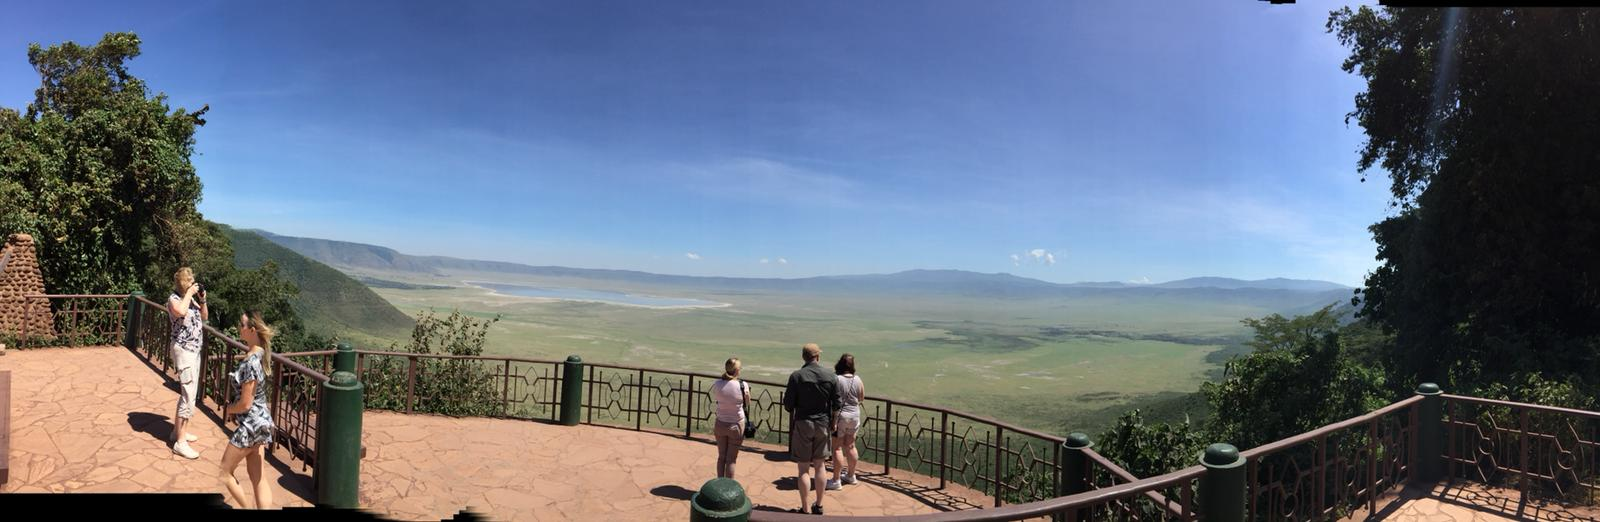 Viewpoint at Ngorongoro Conservation Area | Lisa's African Adventure | Erne Travel